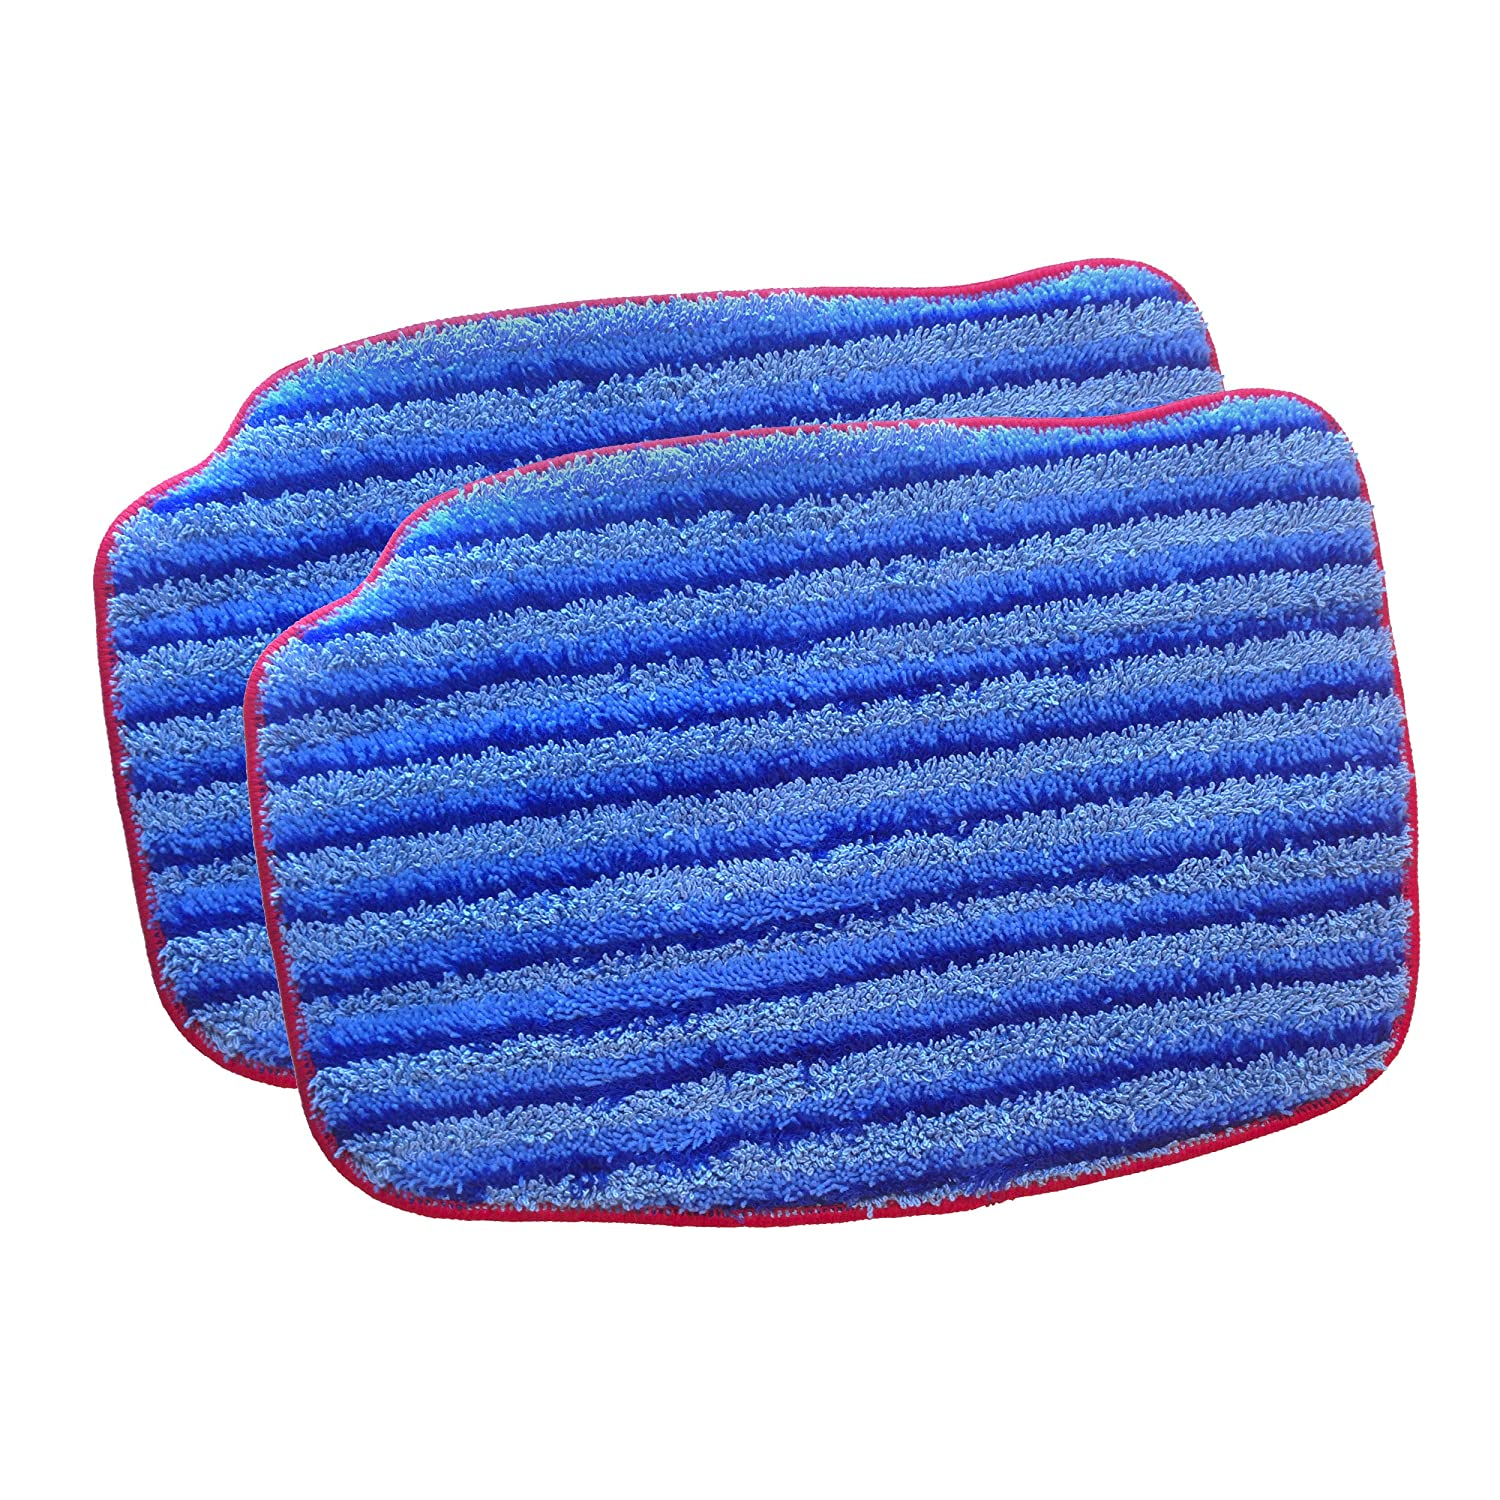 McCulloch A1375-101 Replacement Scrubbing Microfiber Mop Pad for MC1375, MC1385, 2-Pack Vornado Air